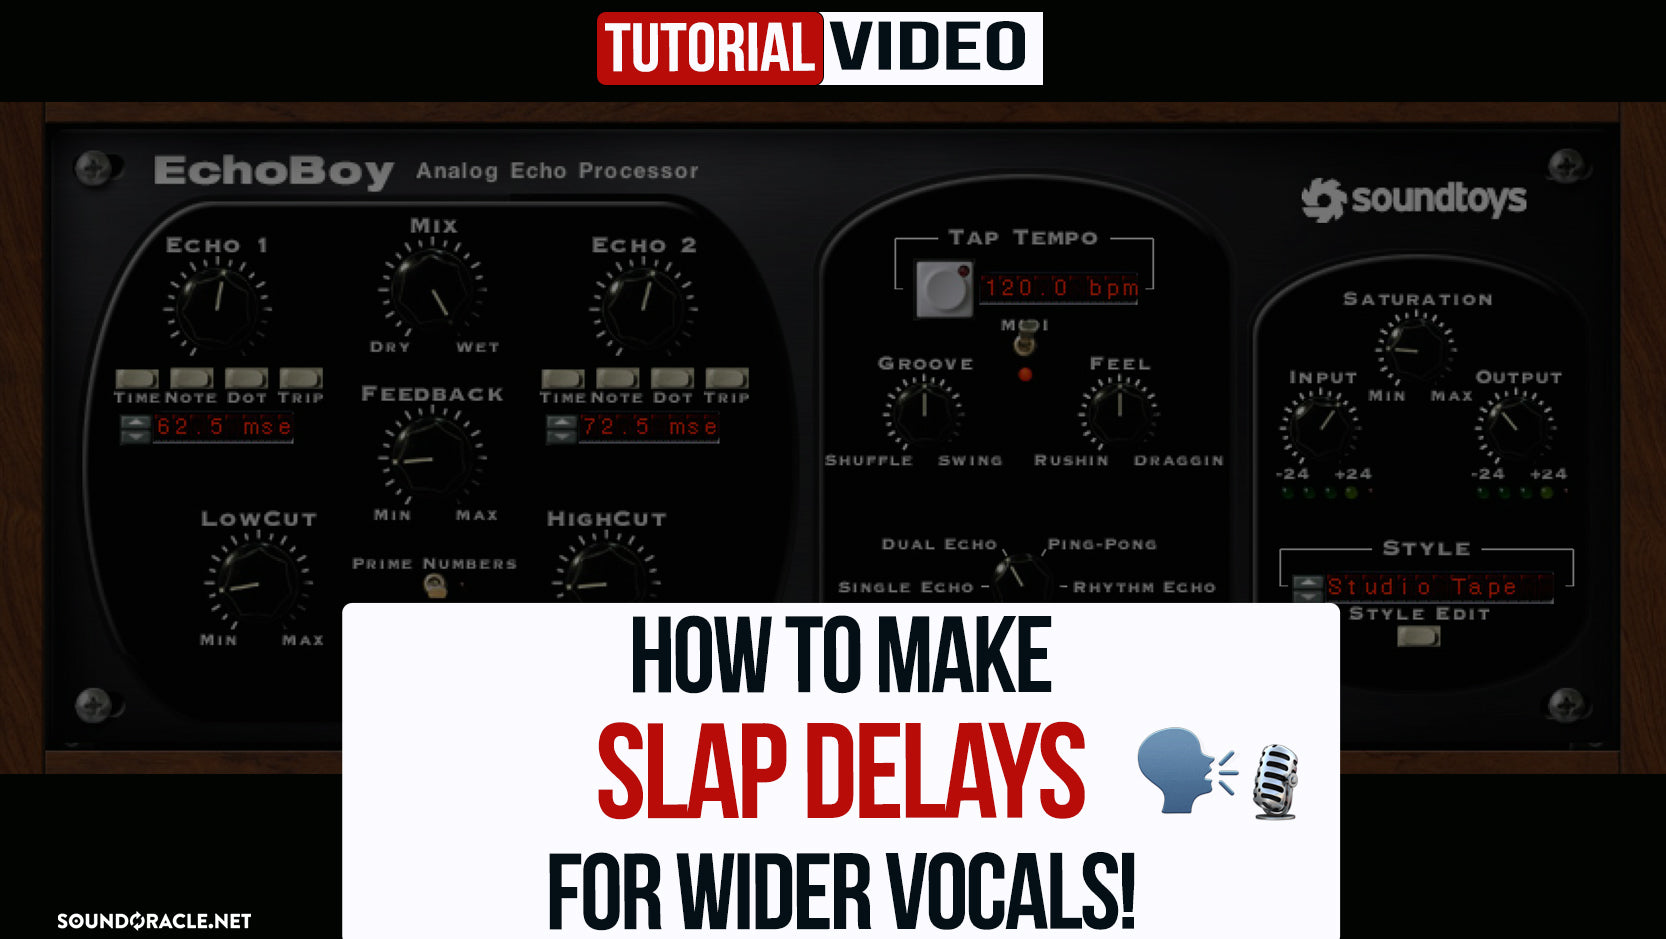 How To Make Slap Delays For Wider Vocals!